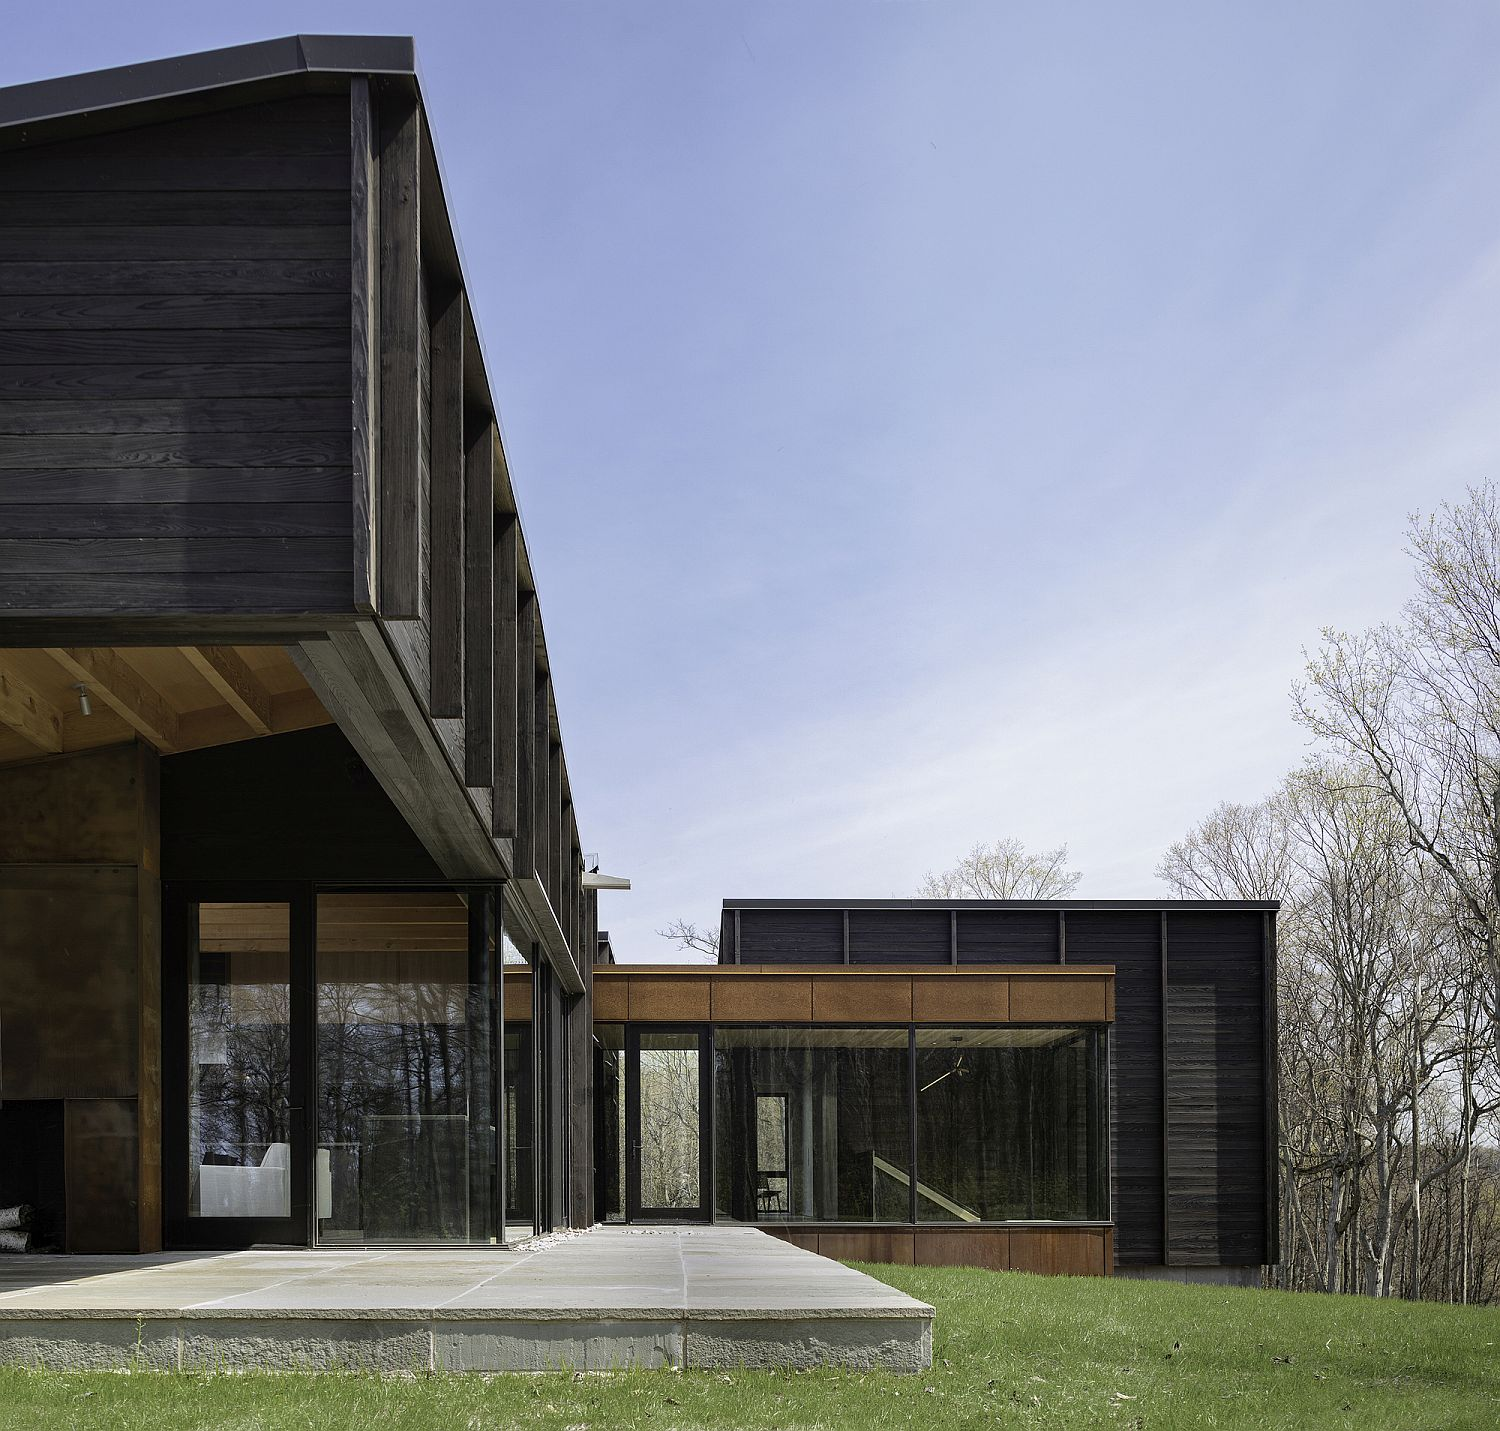 Charred wood exterior of the stylish Michigan Lake House with a sweeping modern interior